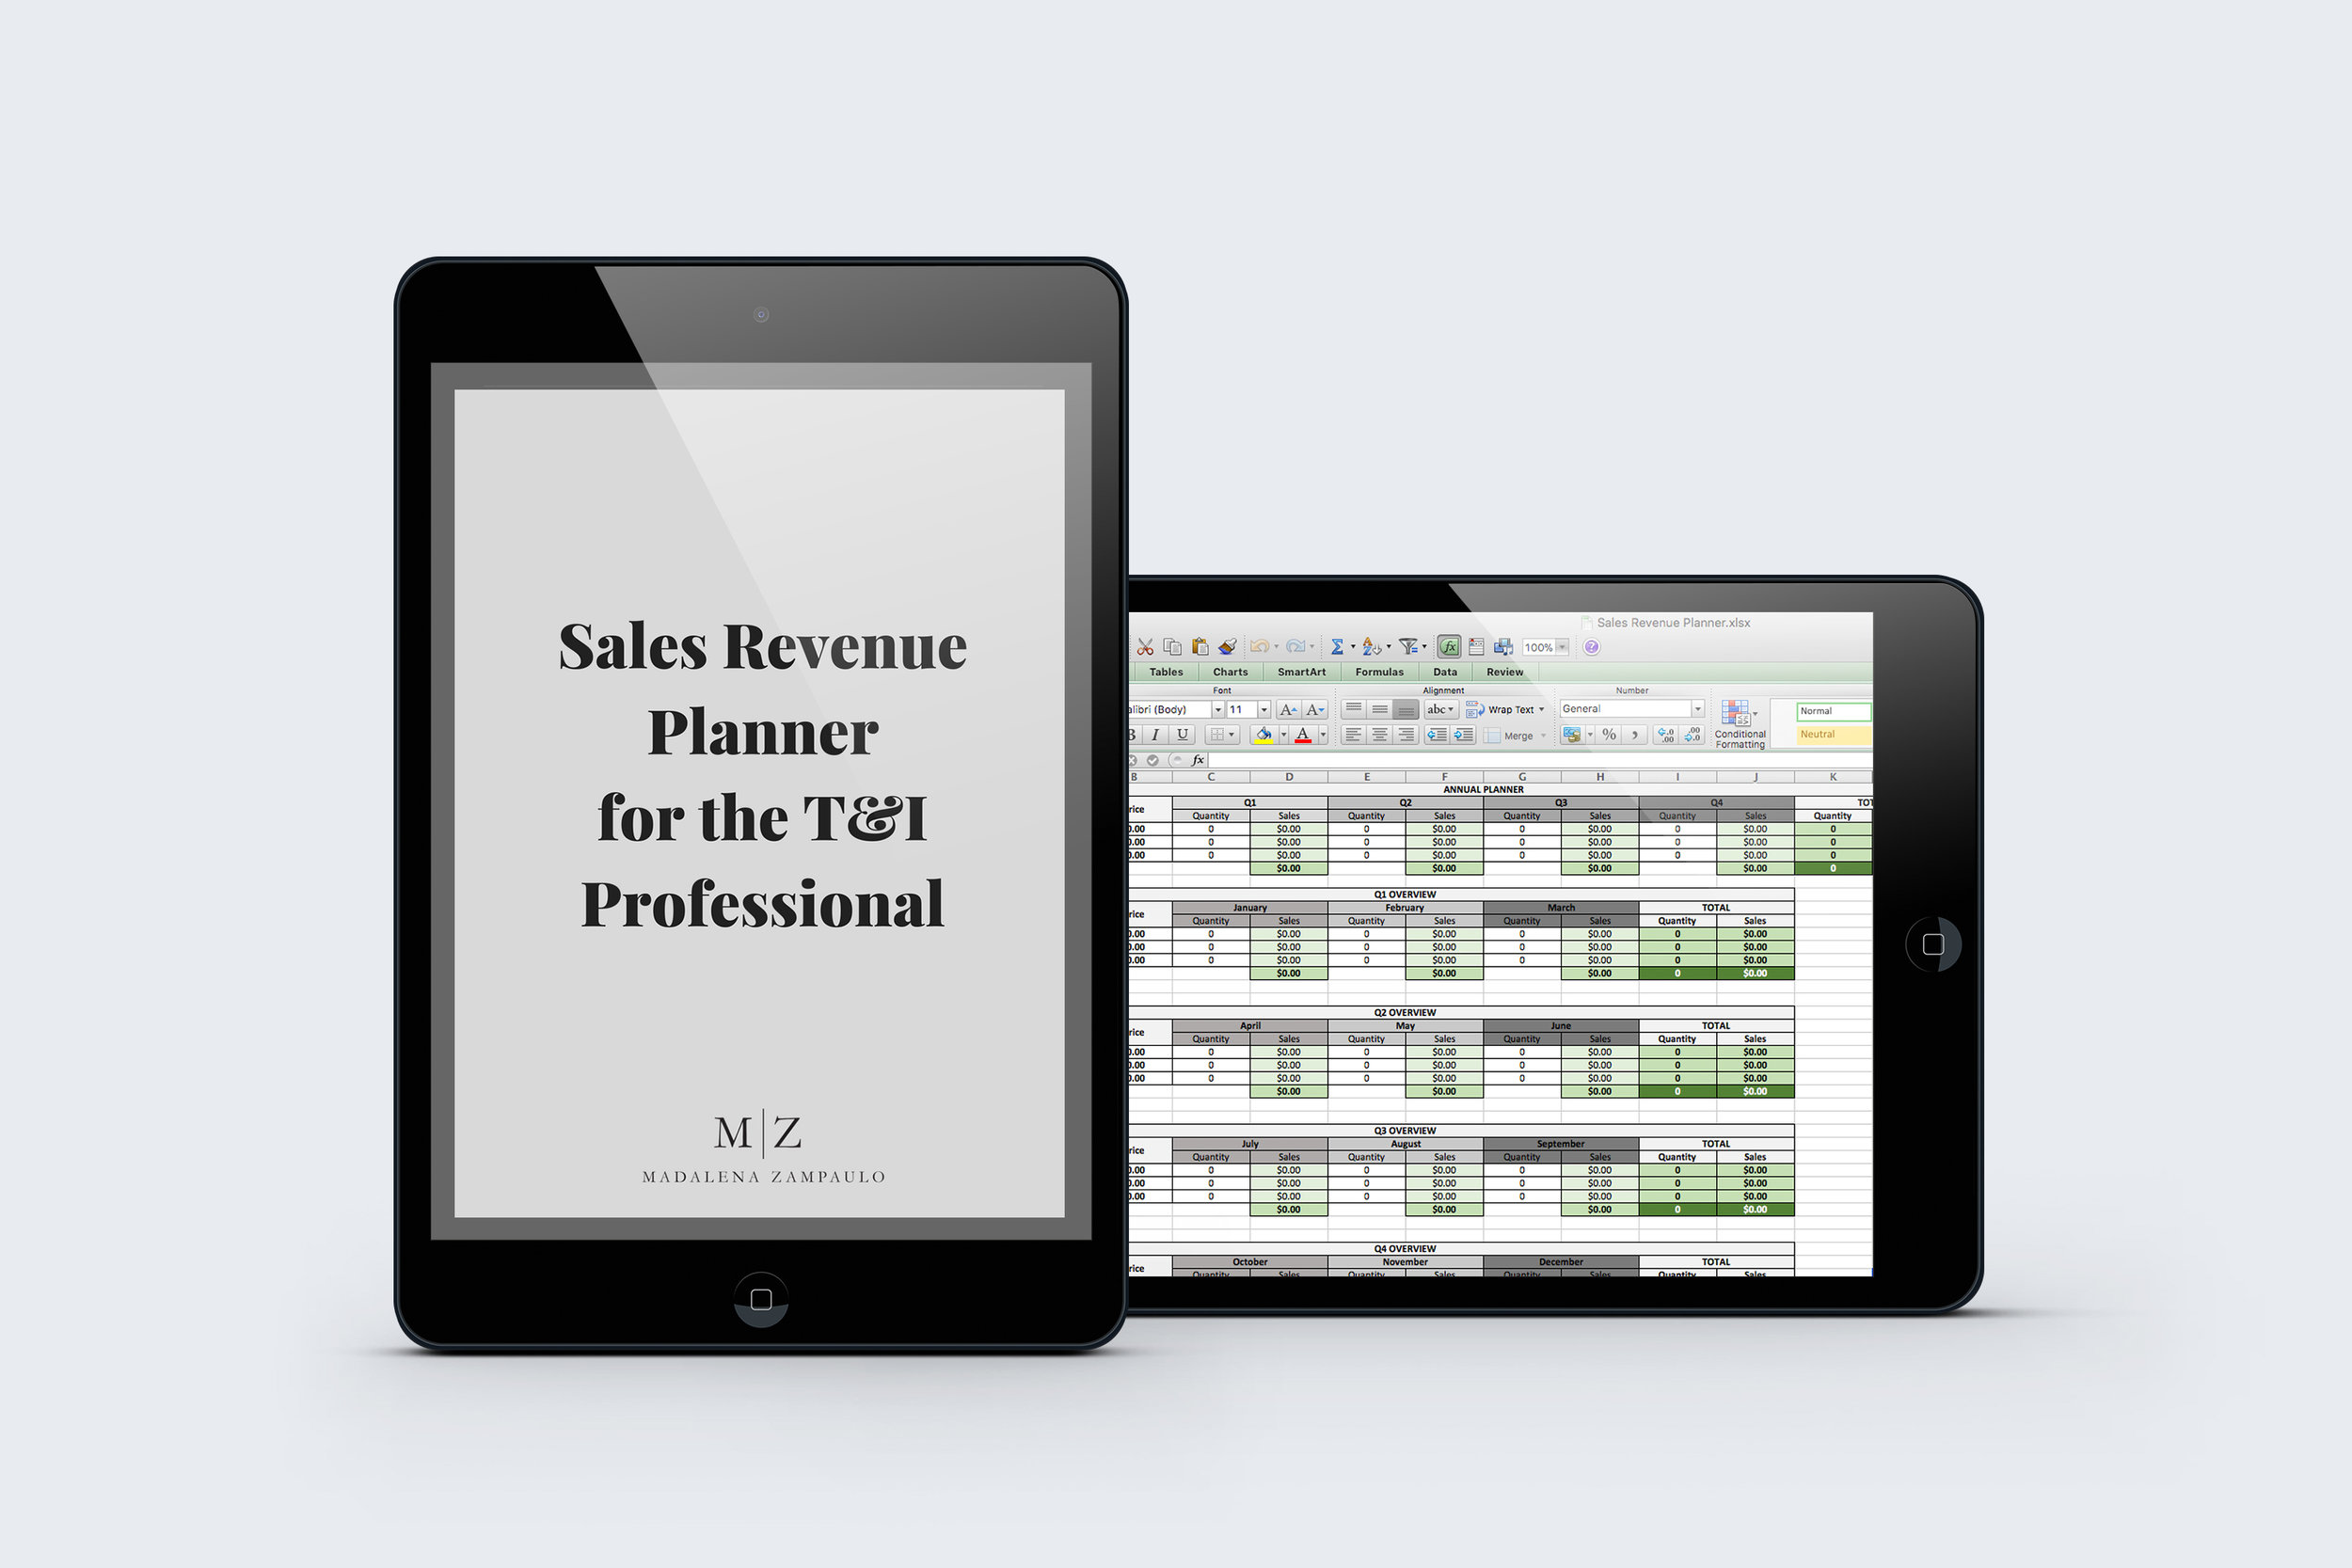 Sales Revenue Planner for the Translation and Interpreting Professional.jpg